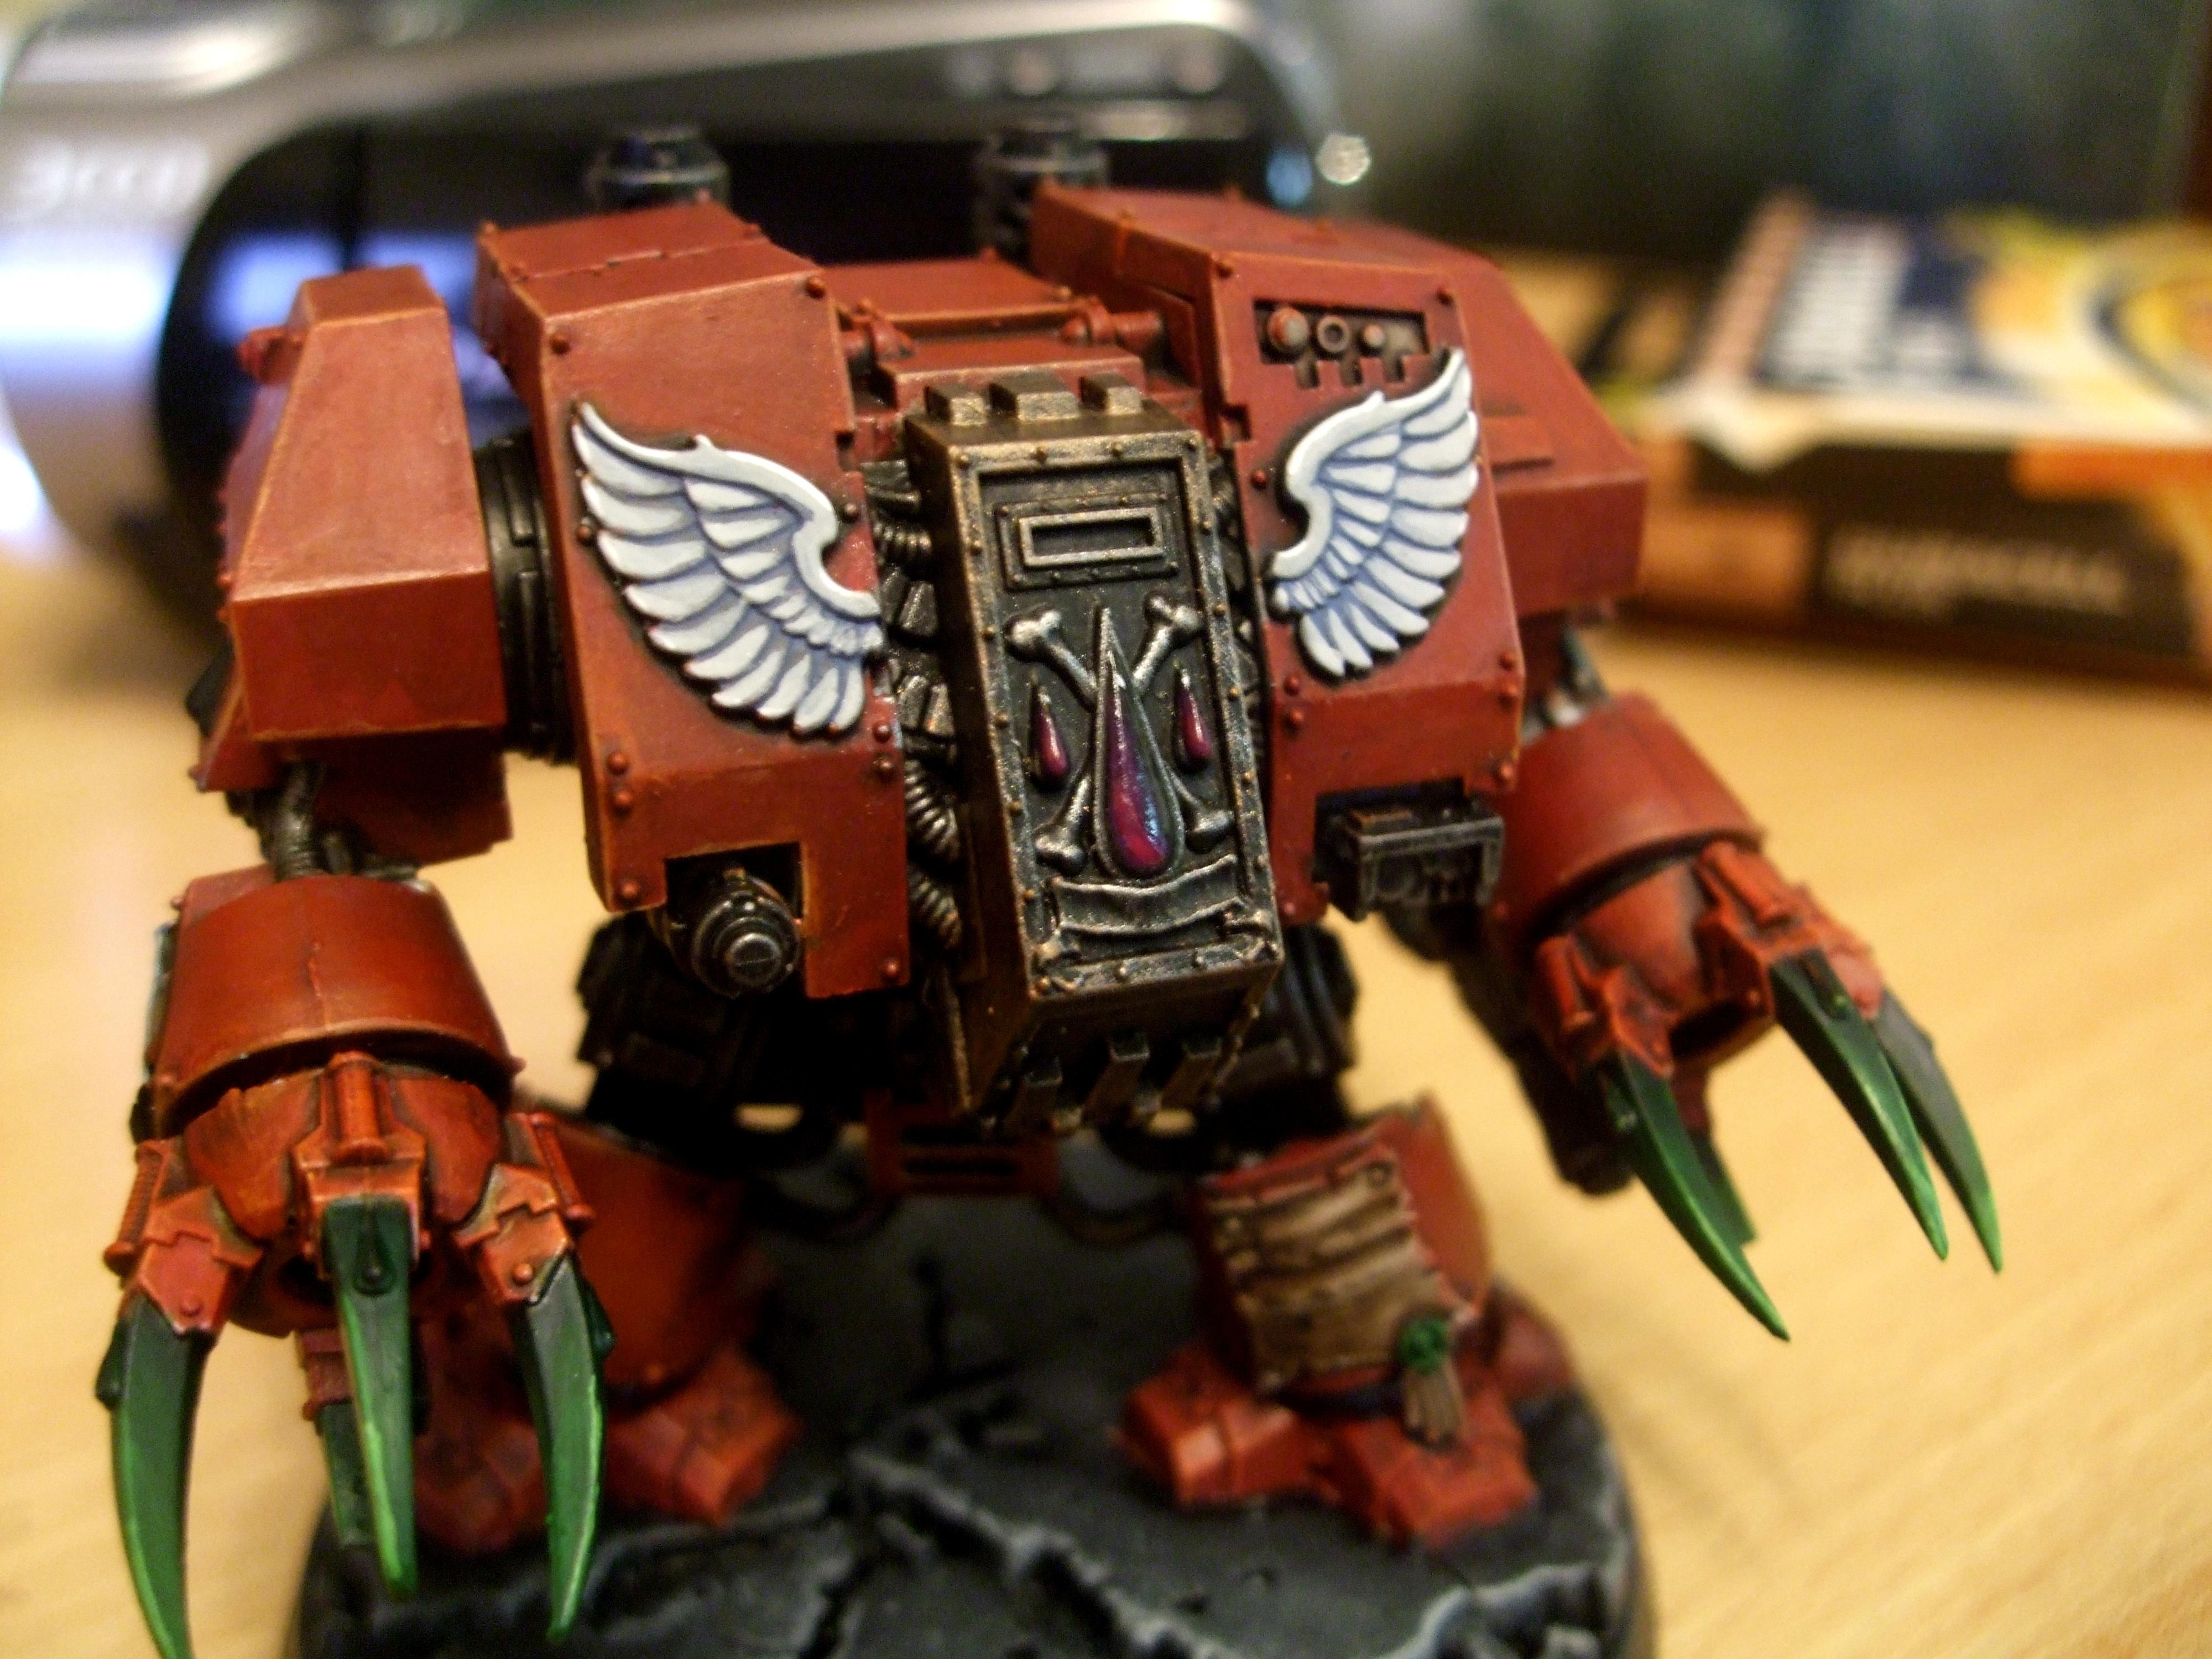 Blood Angels, Blood Angels Dreadnaught, Cybot, Dreadnought, Red